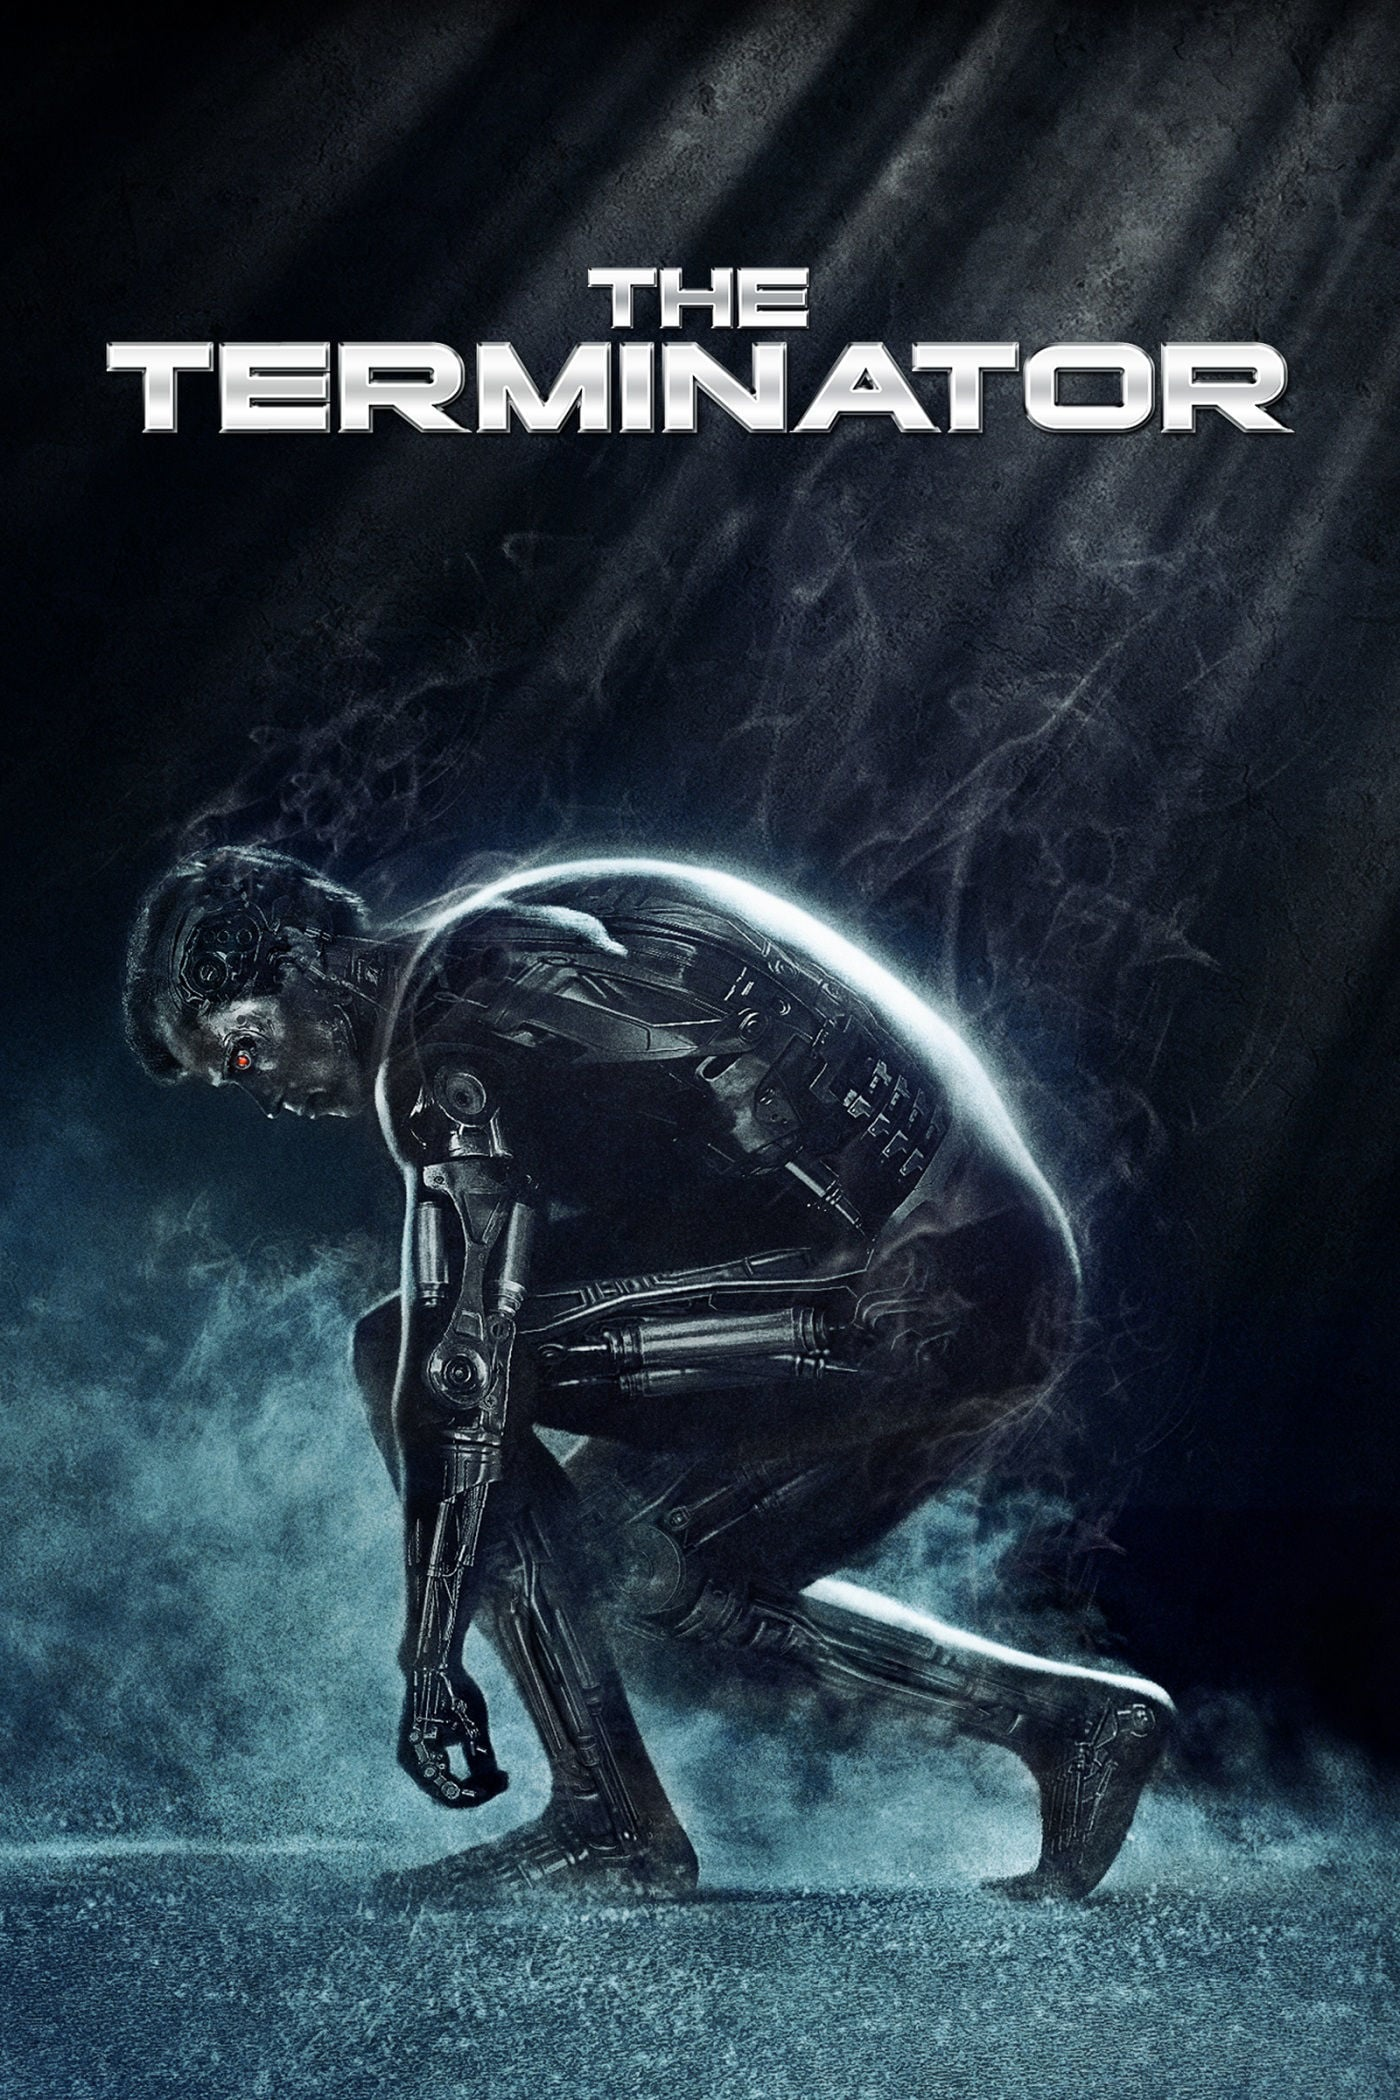 The Terminator Wallpaper For IPhone